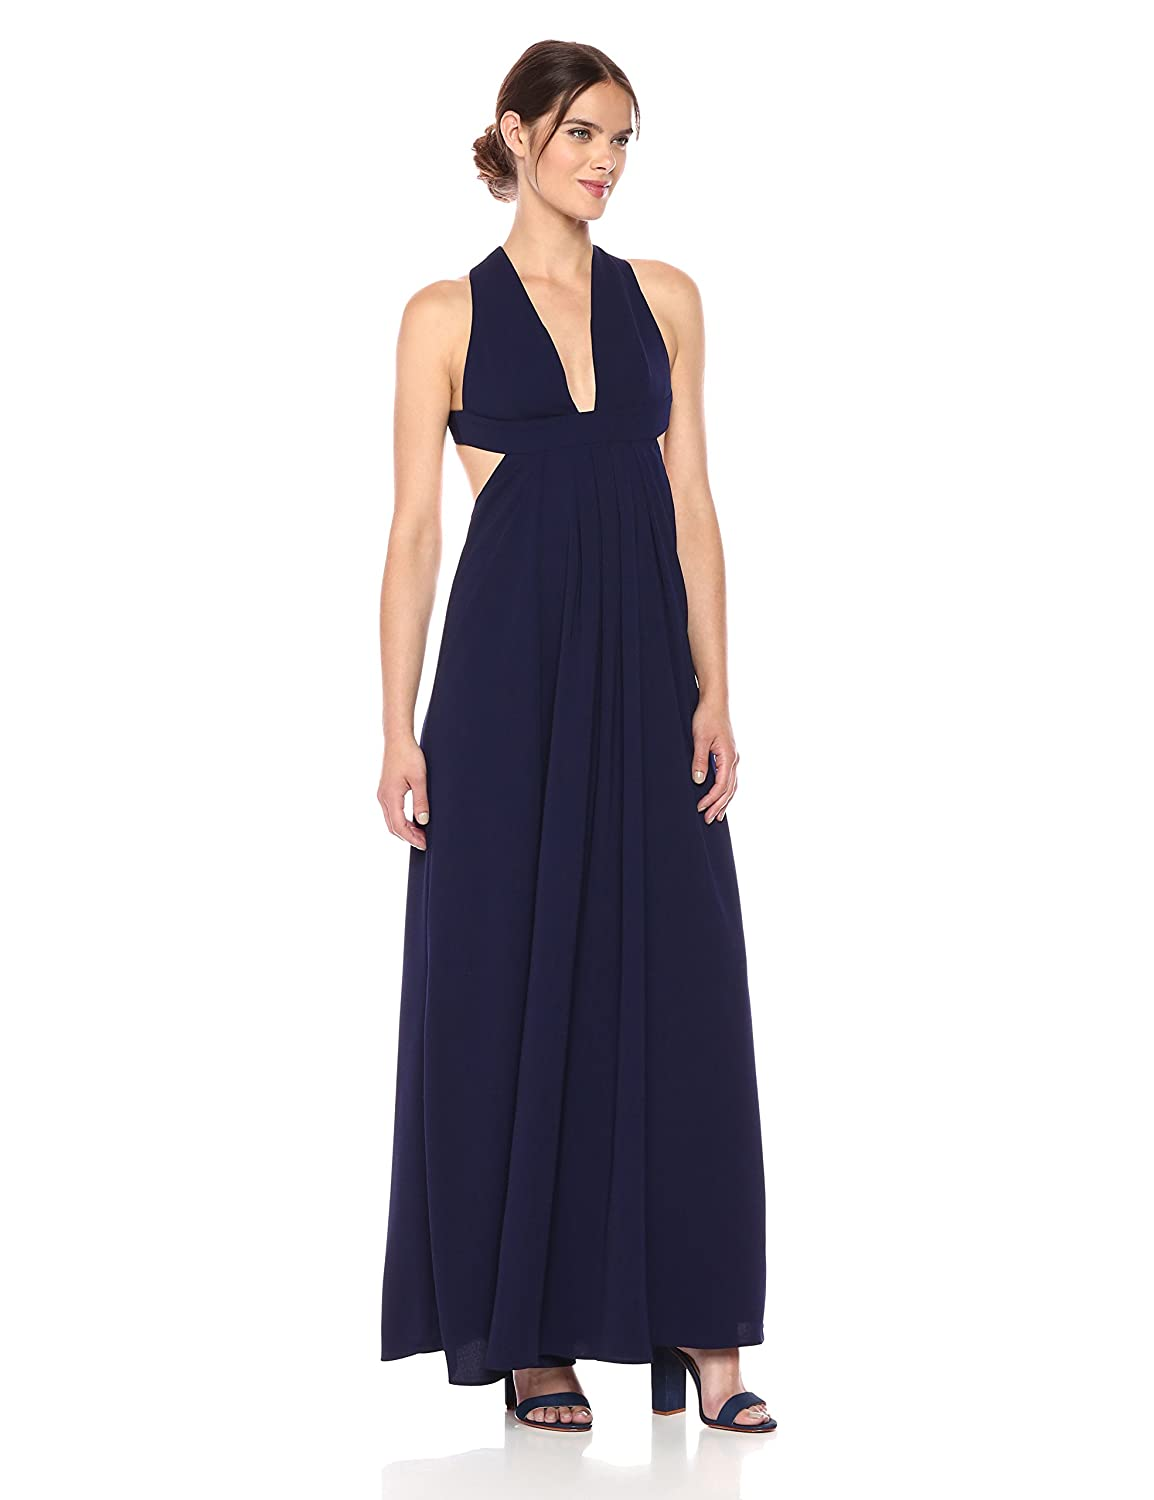 Deep purple Jill Jill Stuart Women's Plunging Neck Side Cutout 2Ply Crepe Gown